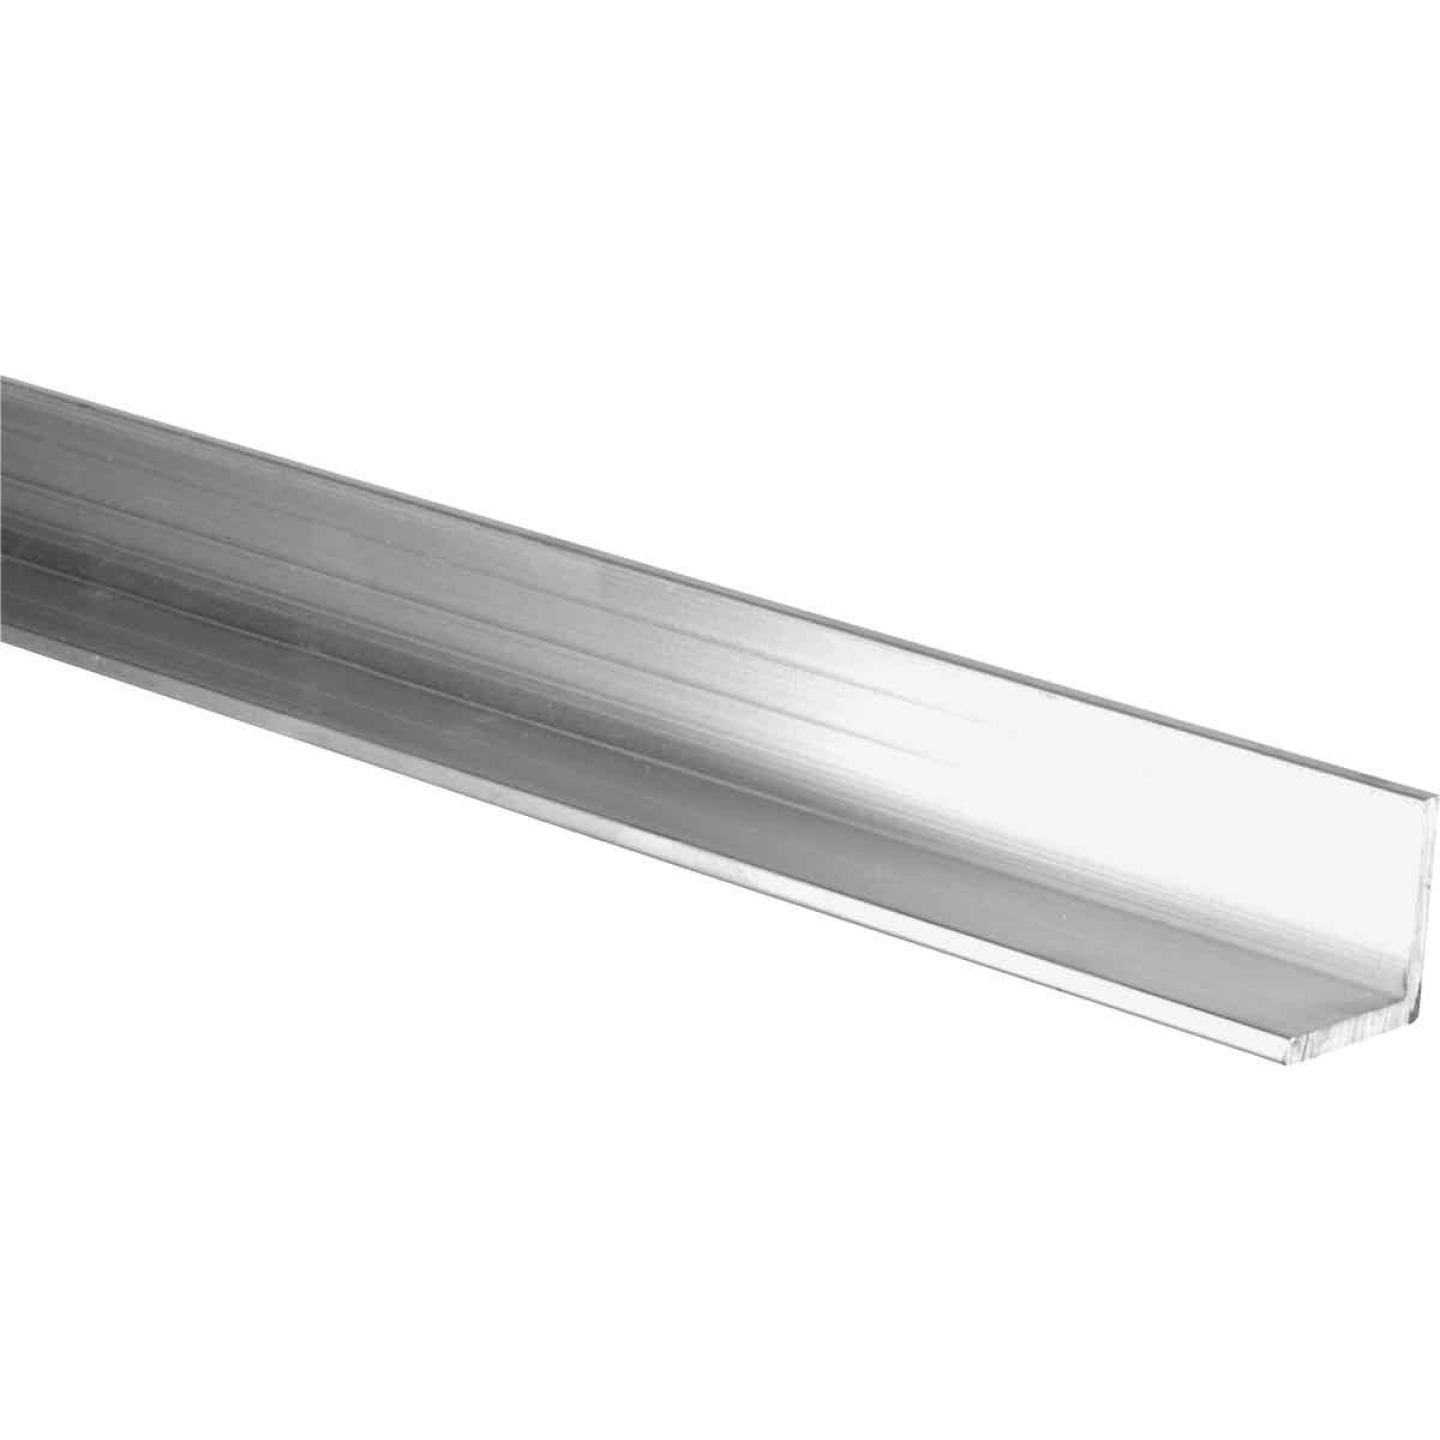 HILLMAN Steelworks Mill 1/2 In. x 4 Ft., 1/16 In. Aluminum Solid Angle Image 1